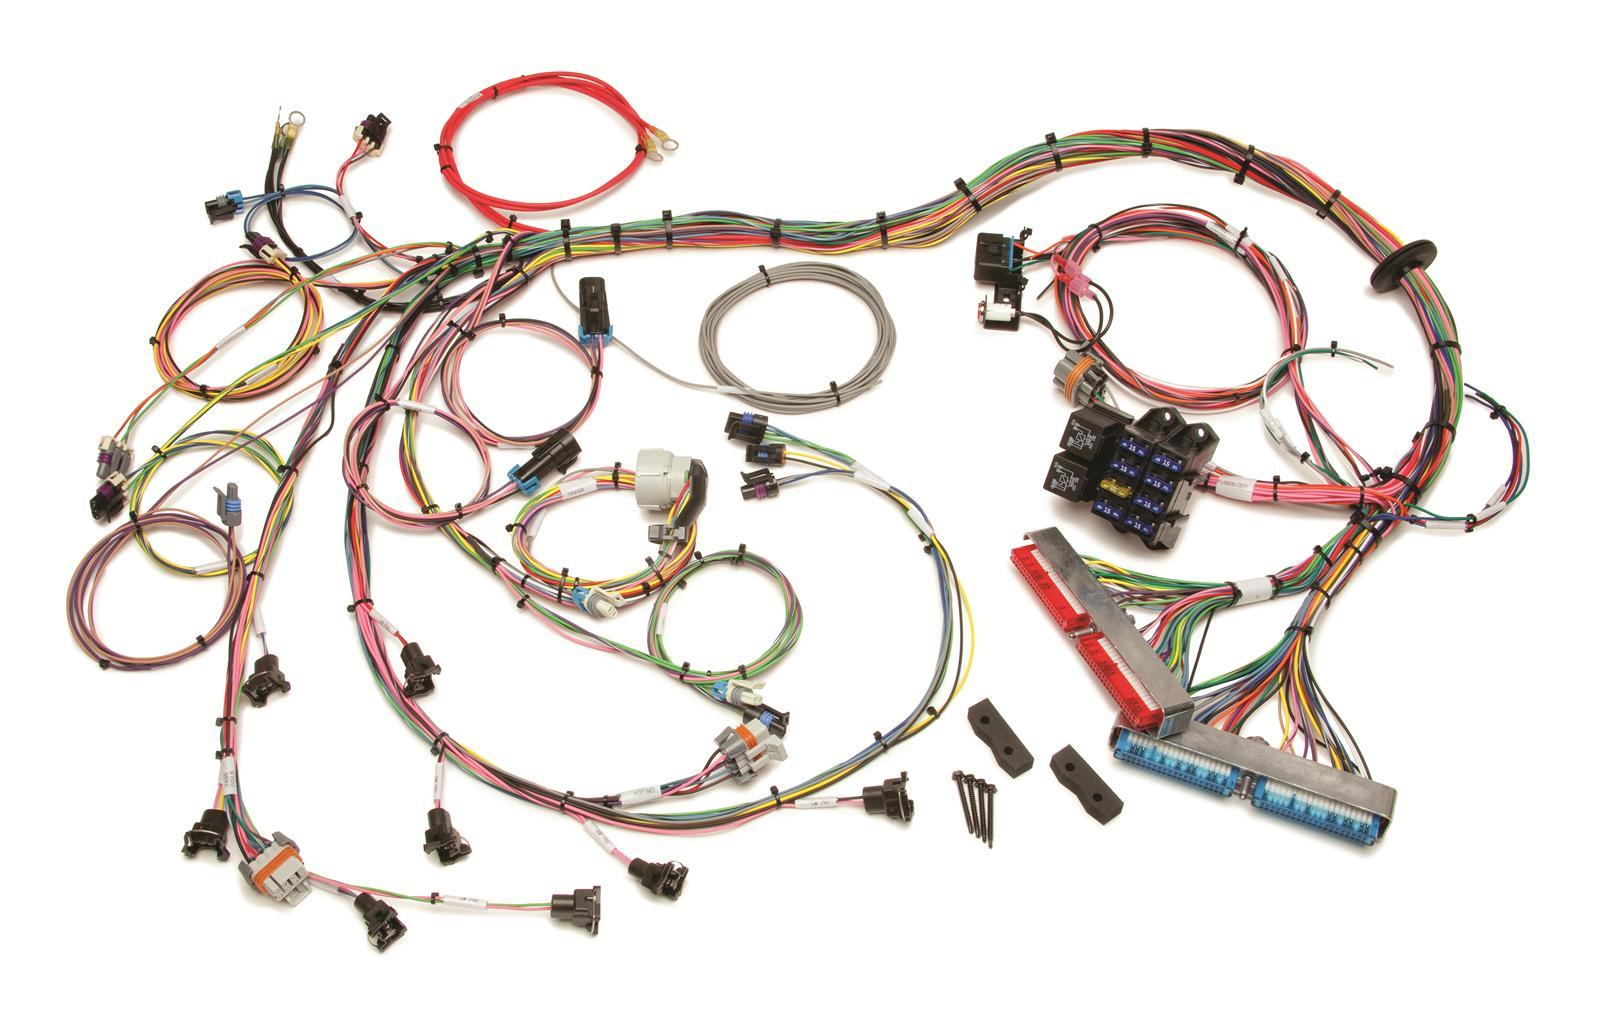 hight resolution of painless performance fuel injection harnesses 60508 free shipping on orders over 49 at summit racing